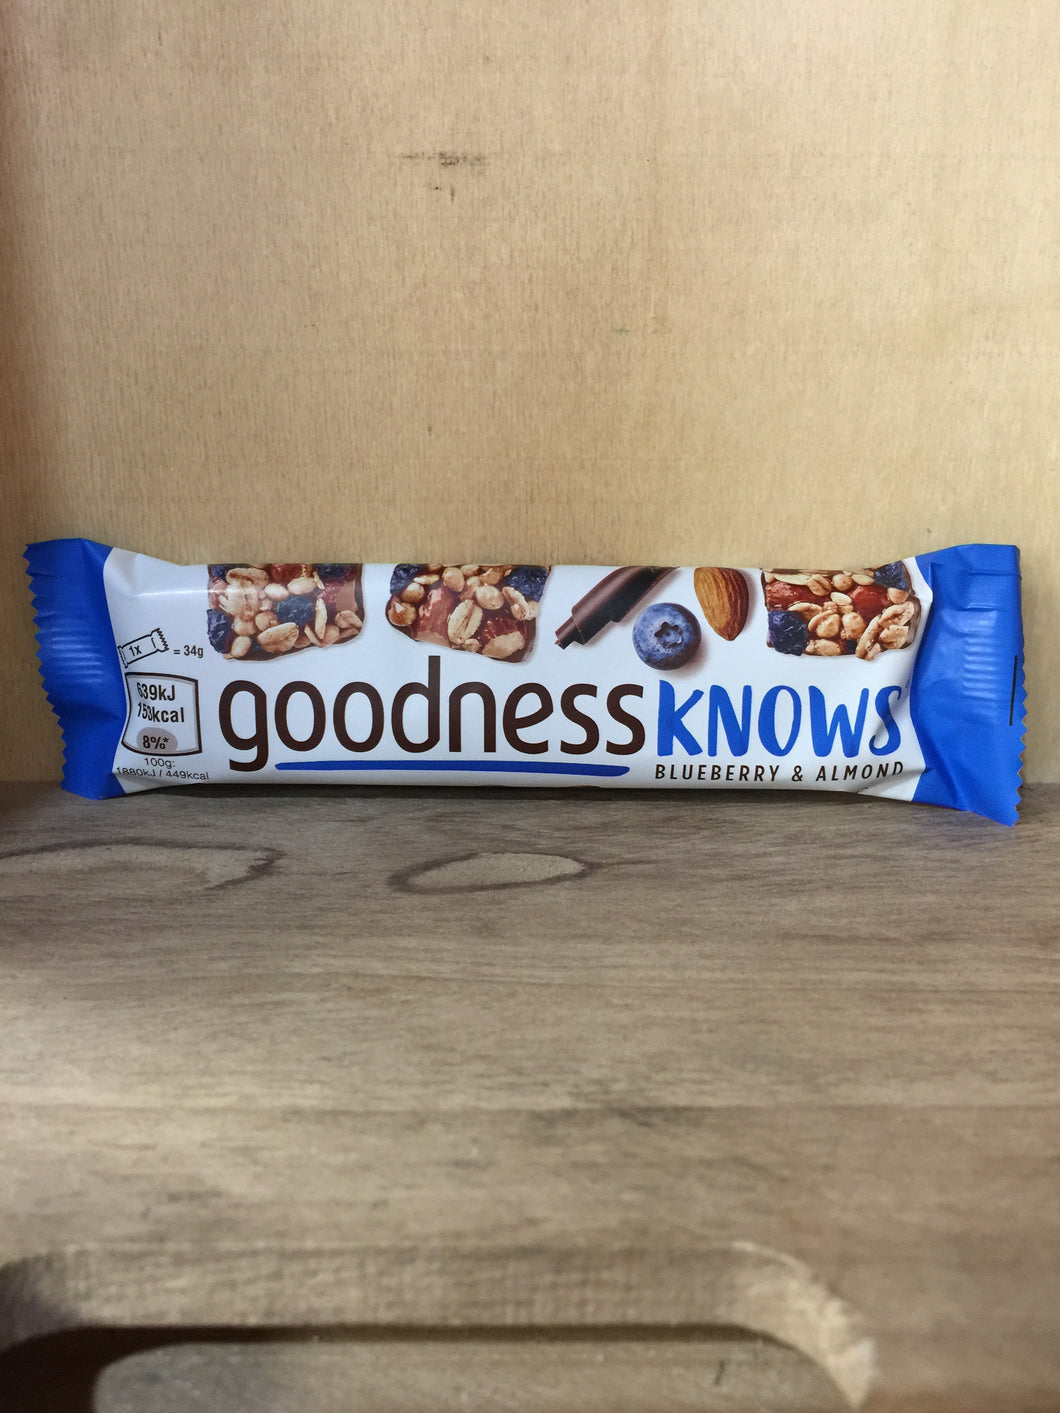 Goodnessknows Blueberry & Almond Cereal Bar 34g